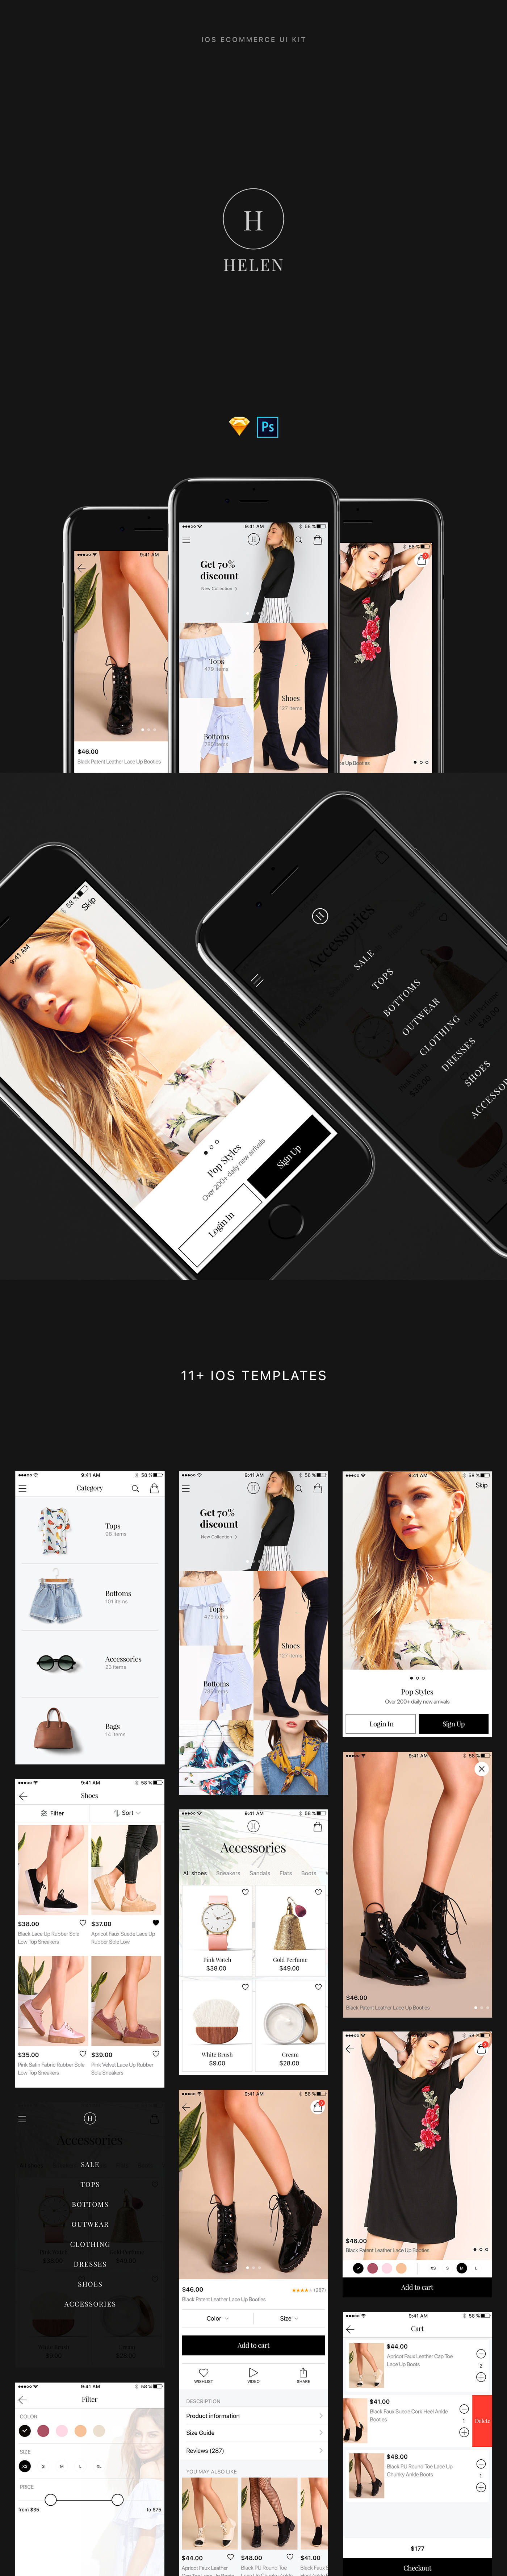 Helen iOS eCommerce UI Kit - Free Sketch and PSD App Design - Download Link